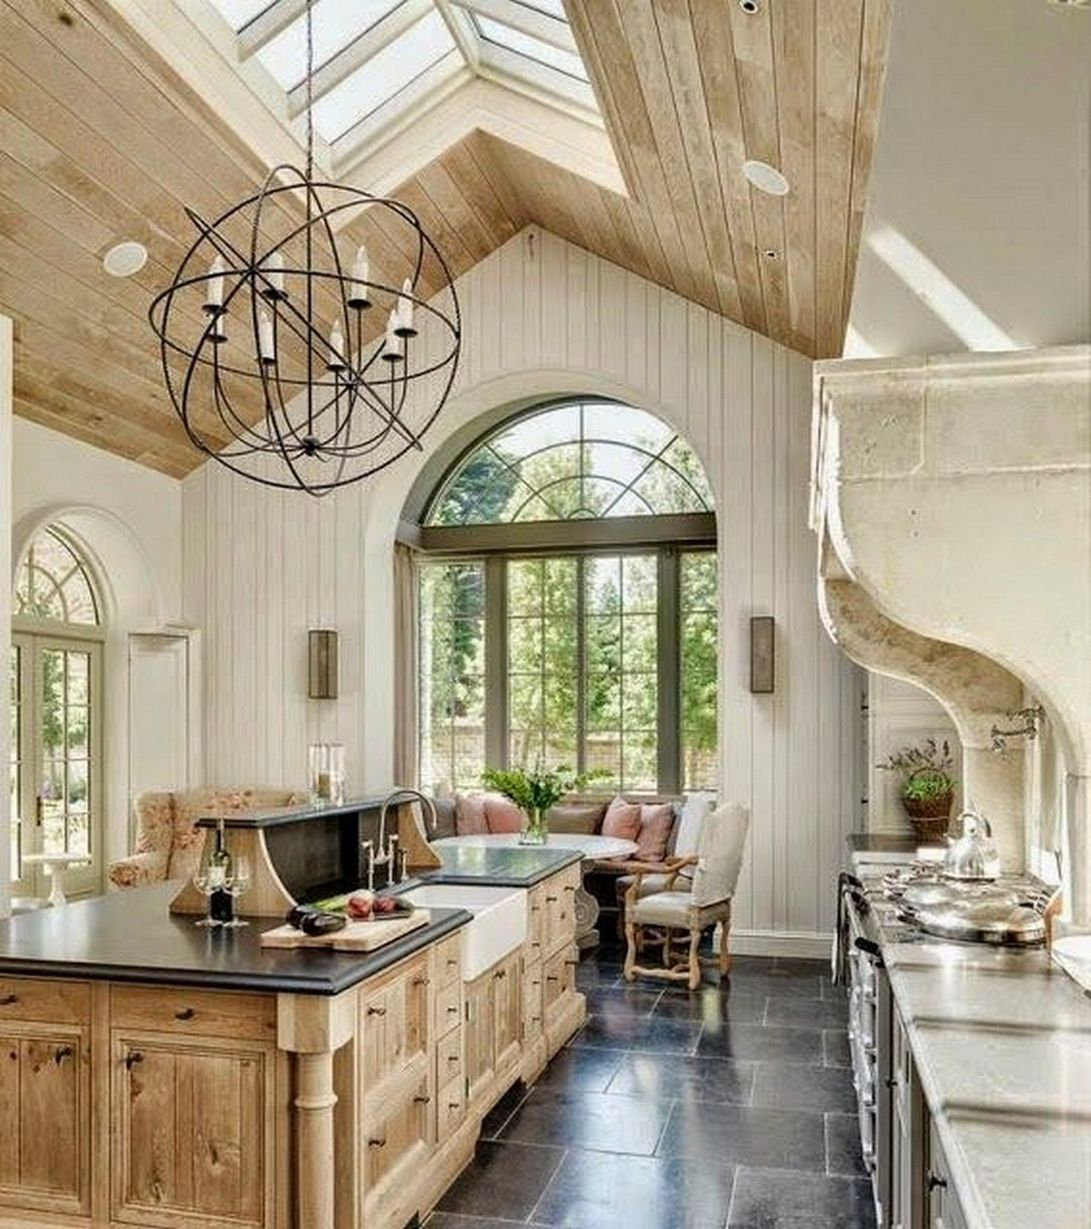 50 Best French Country Kitchens Design Ideas Remodel Pict Http